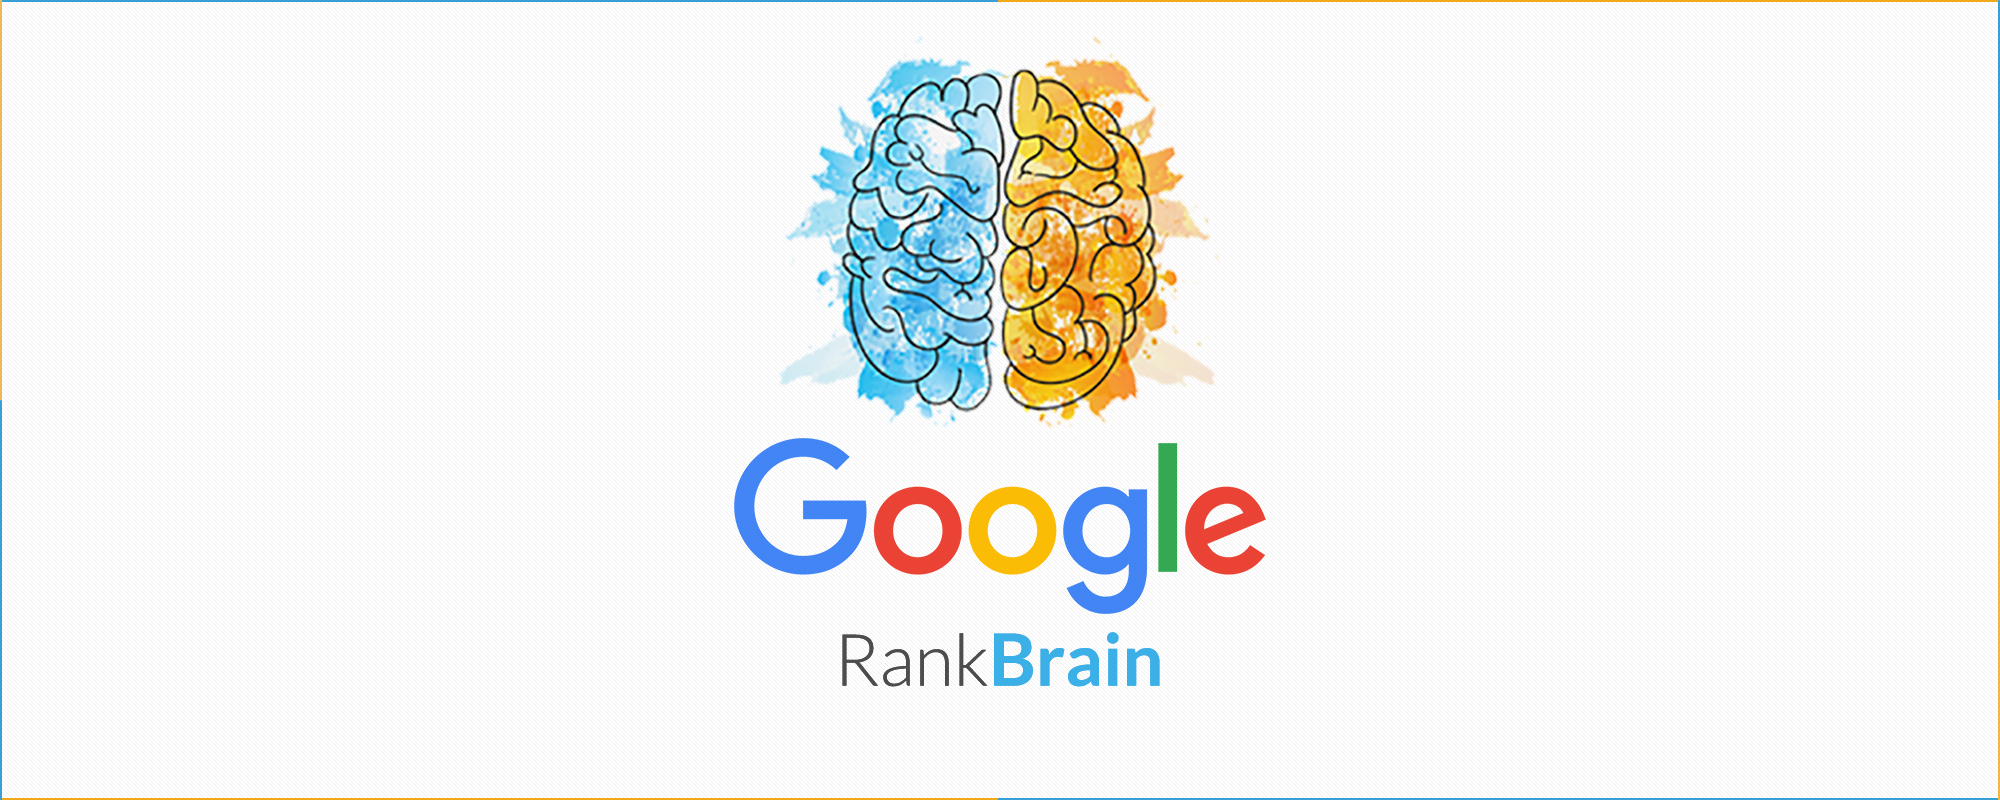 How will Google's RankBrain Impact SEO in the Future?